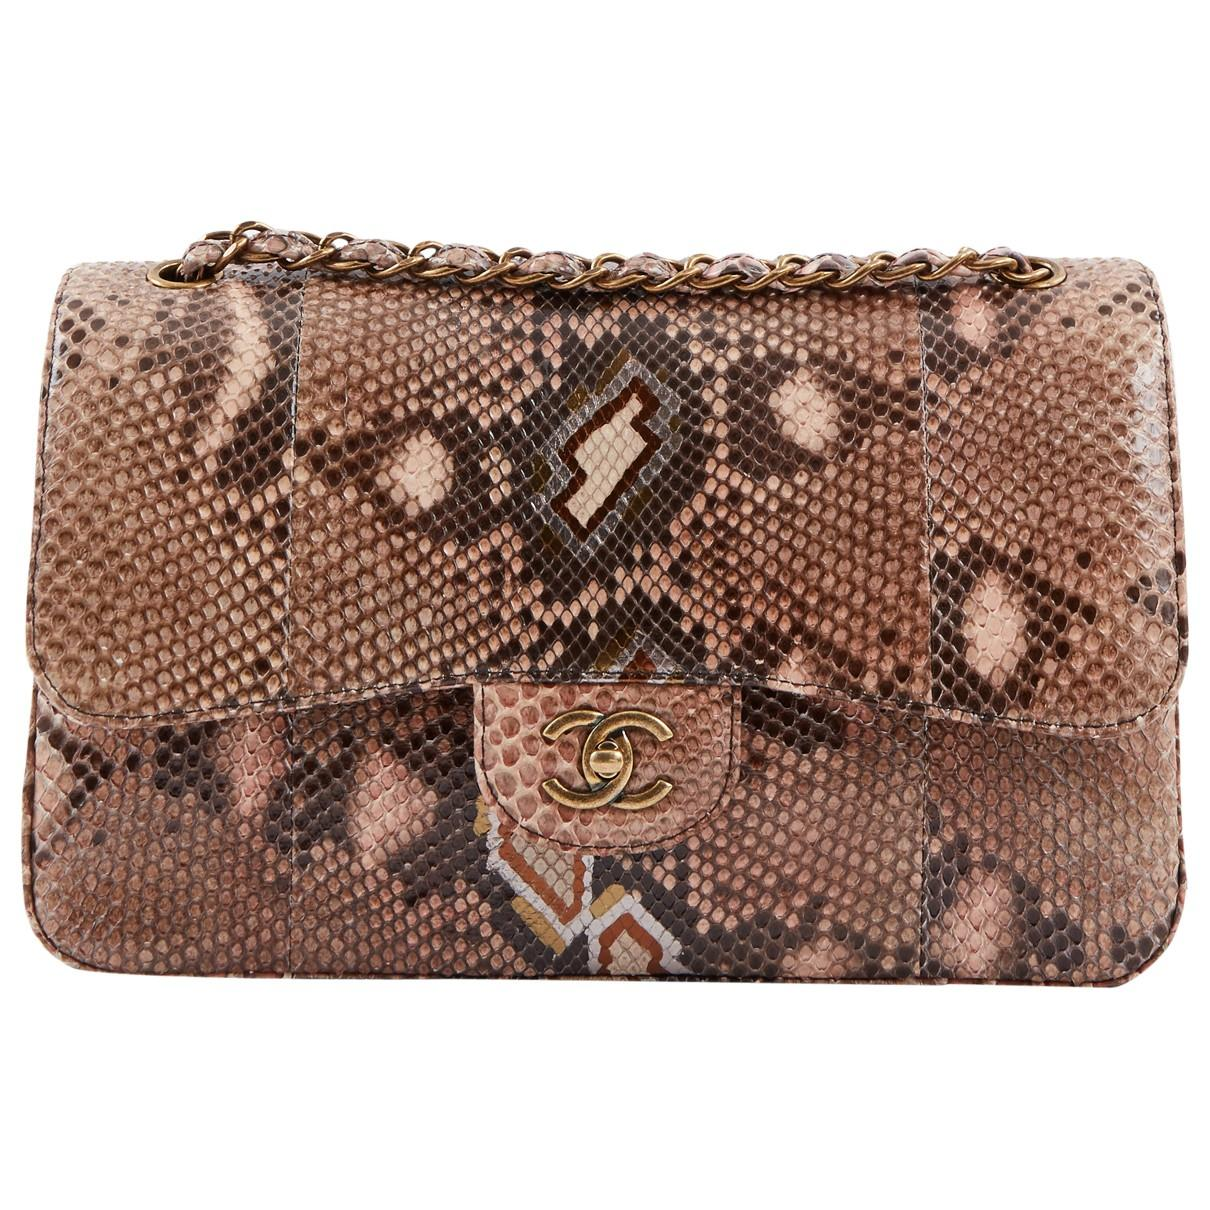 a4ec87b5475a Chanel Timeless Brown Python Handbag in Brown - Lyst